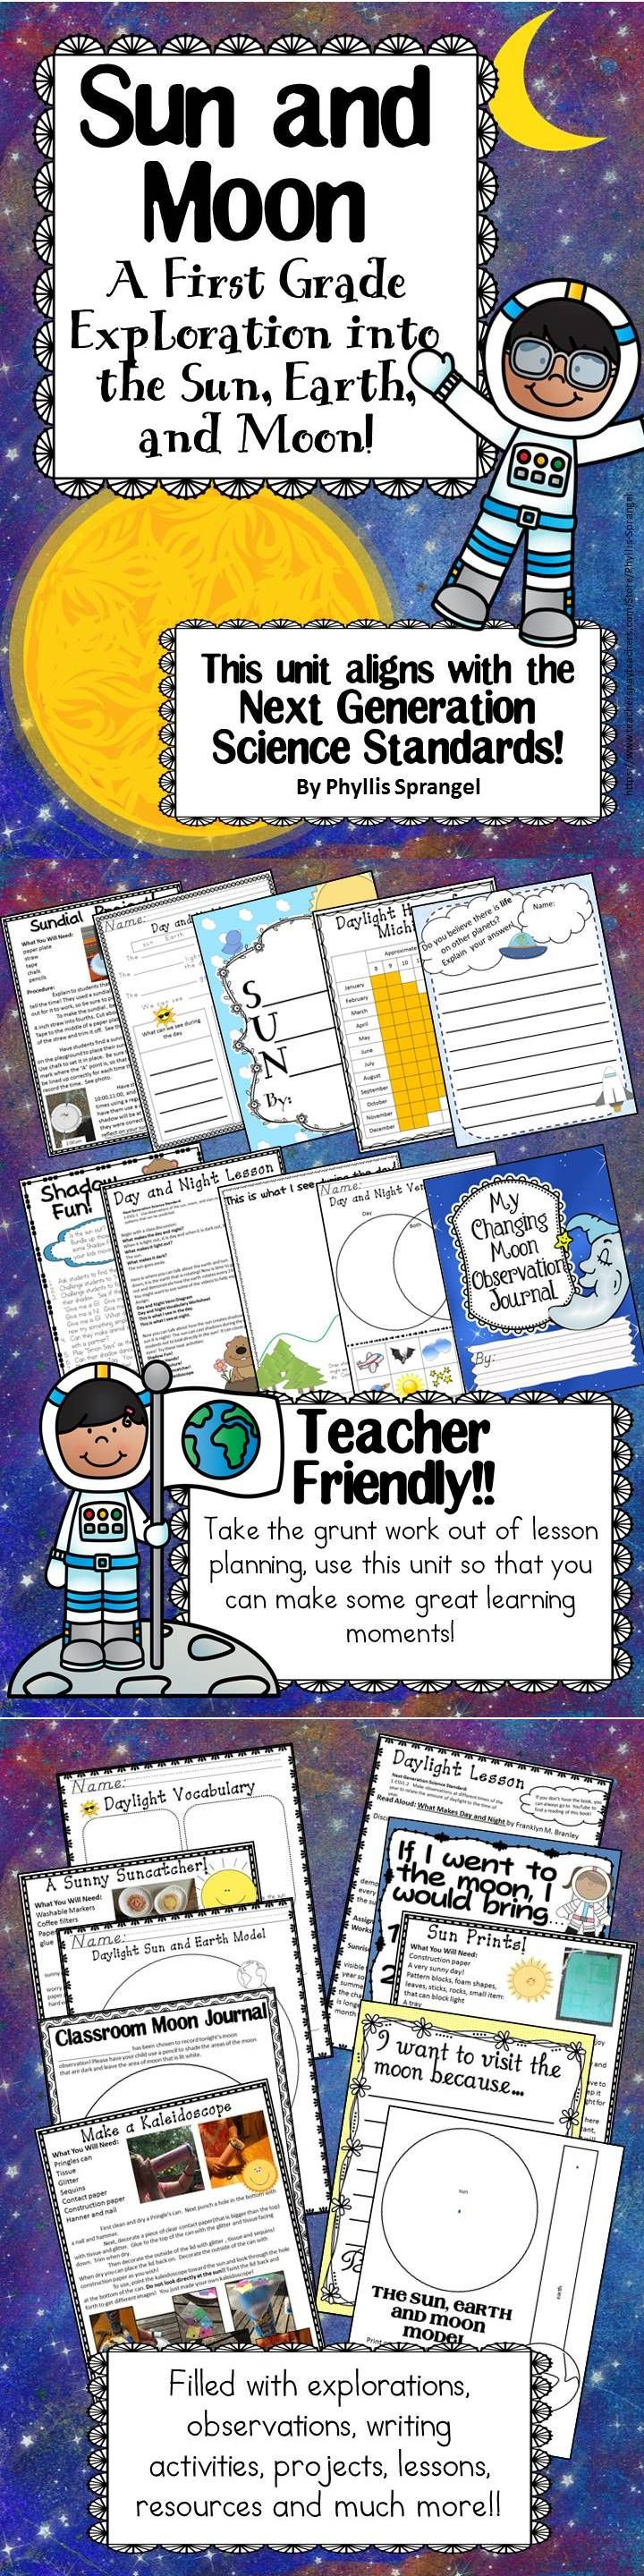 This unit is aligned with the Next Generation Science Standards! It contains, explorations, projects, writing pieces, worksheets, graphs, charts, observations, lesson plans, resources and printables!